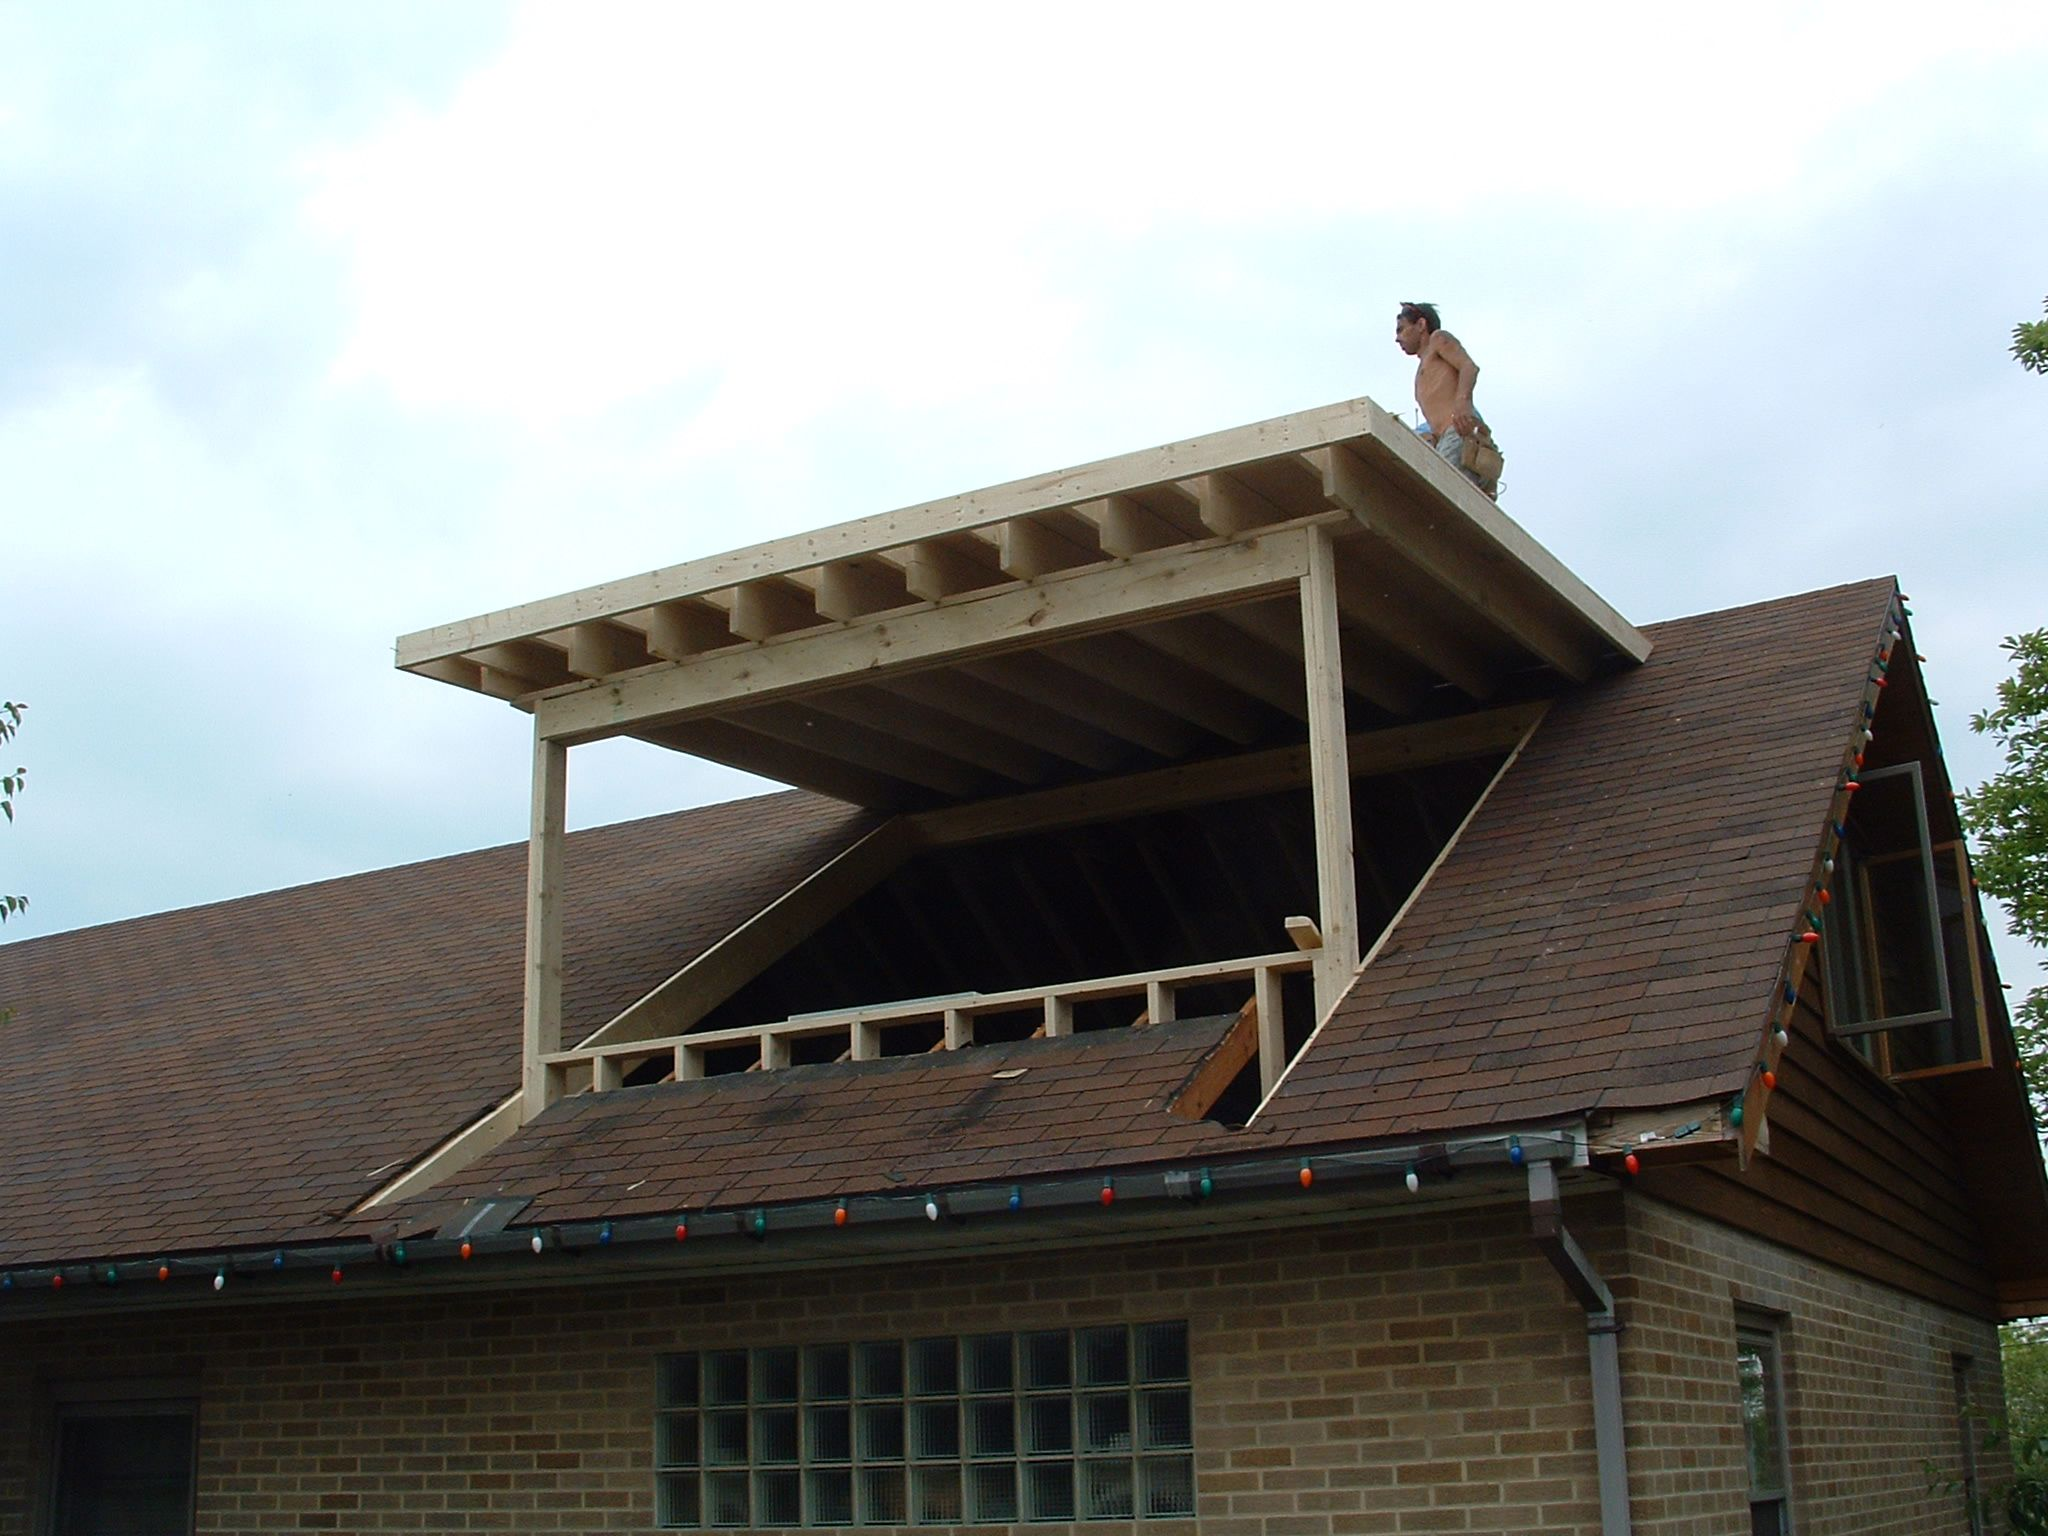 Dormer window ideas  types of dormers on houses  shed dormer description this was one of